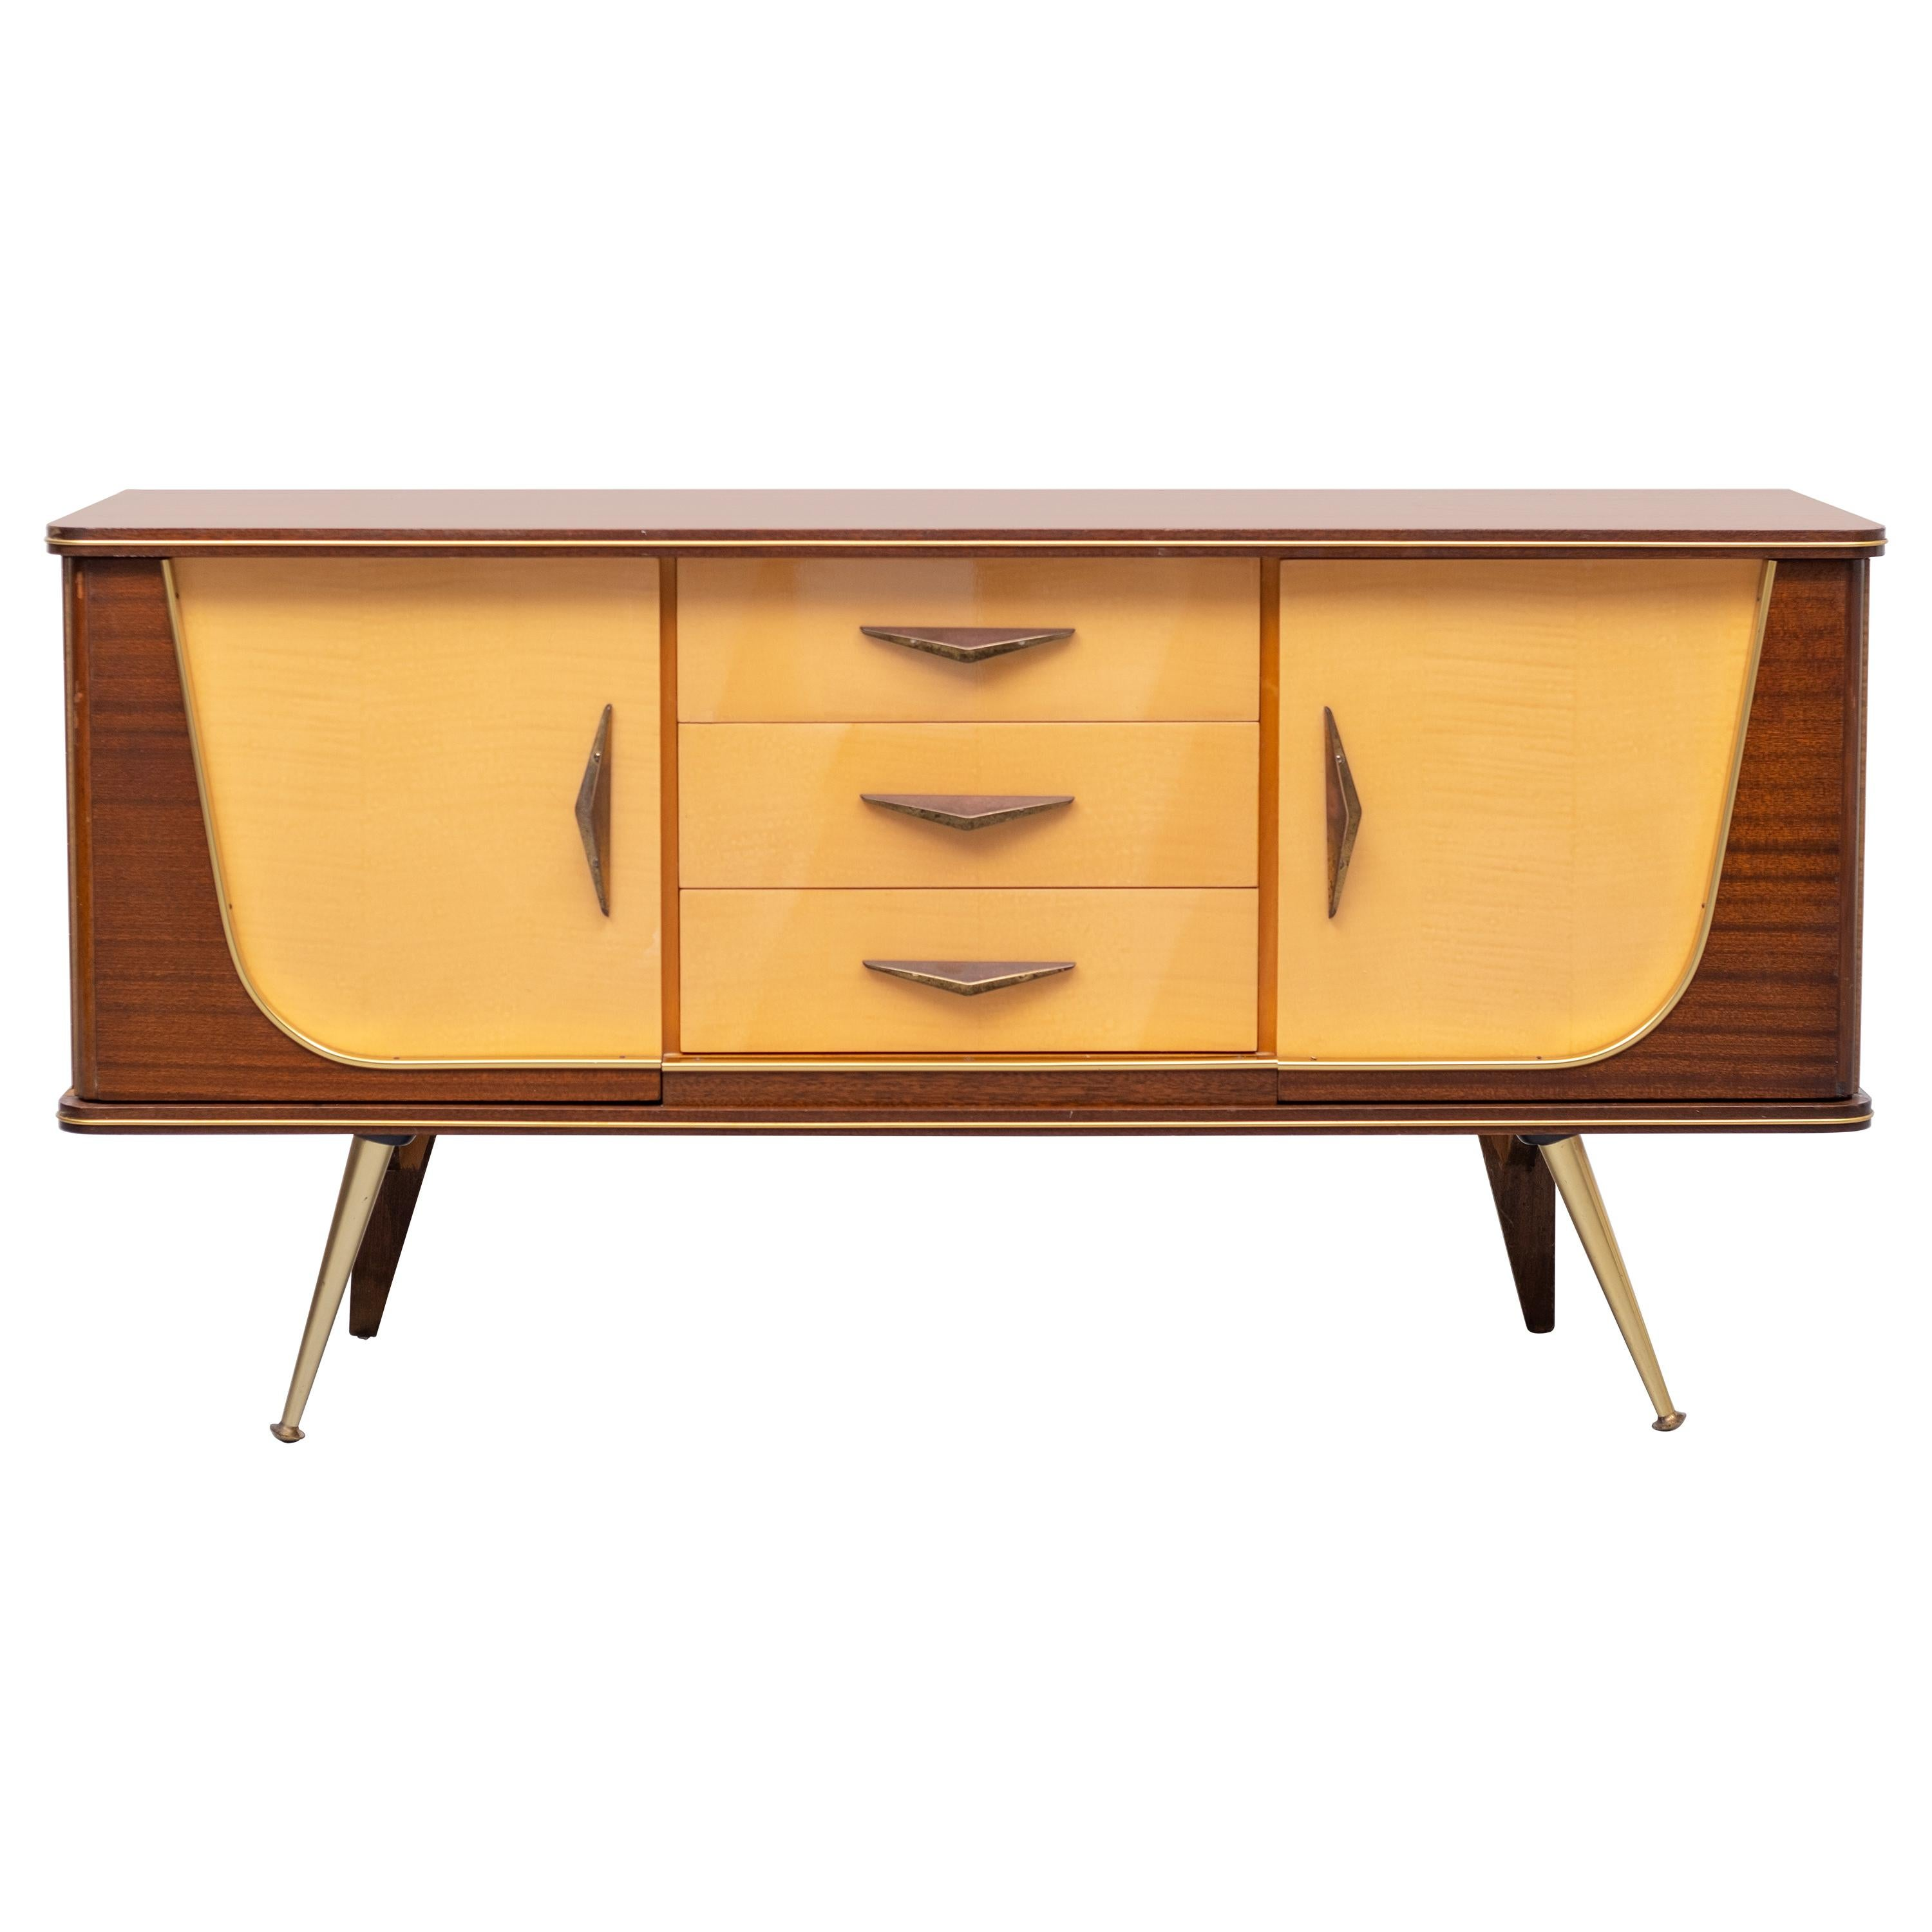 Sideboard, Italy, 1950s